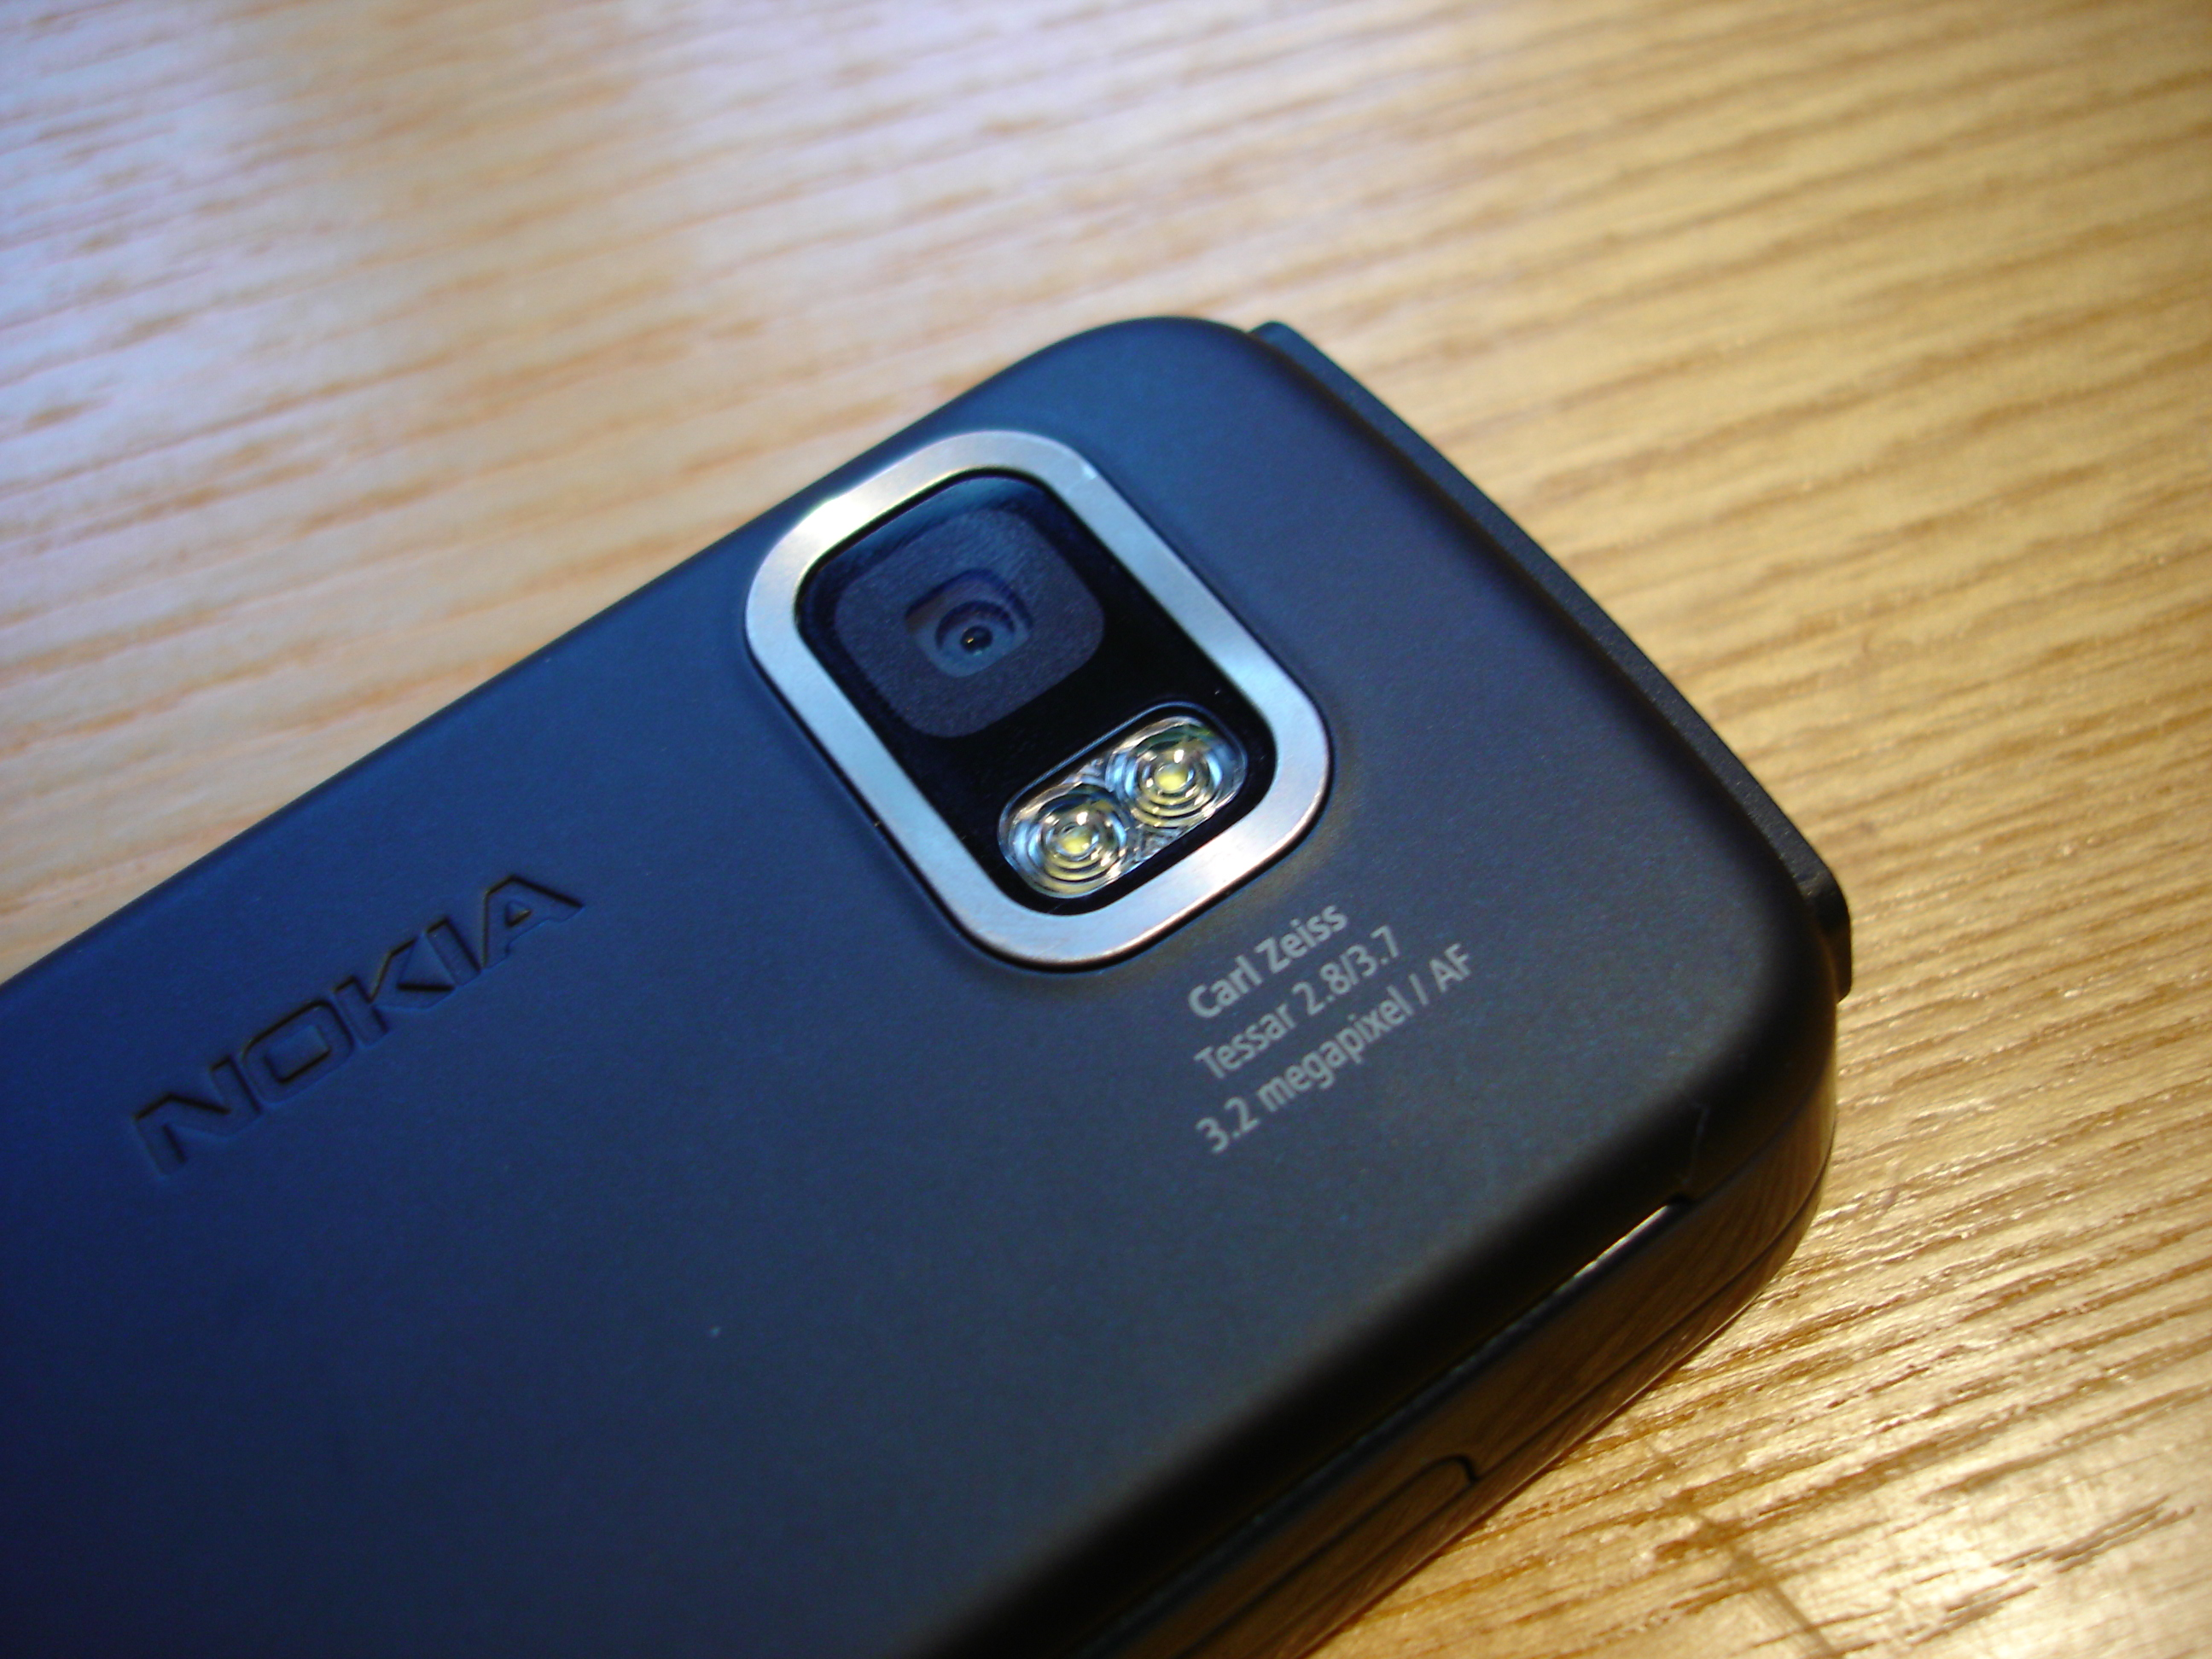 uc player for nokia 5800 xpressmusic specs